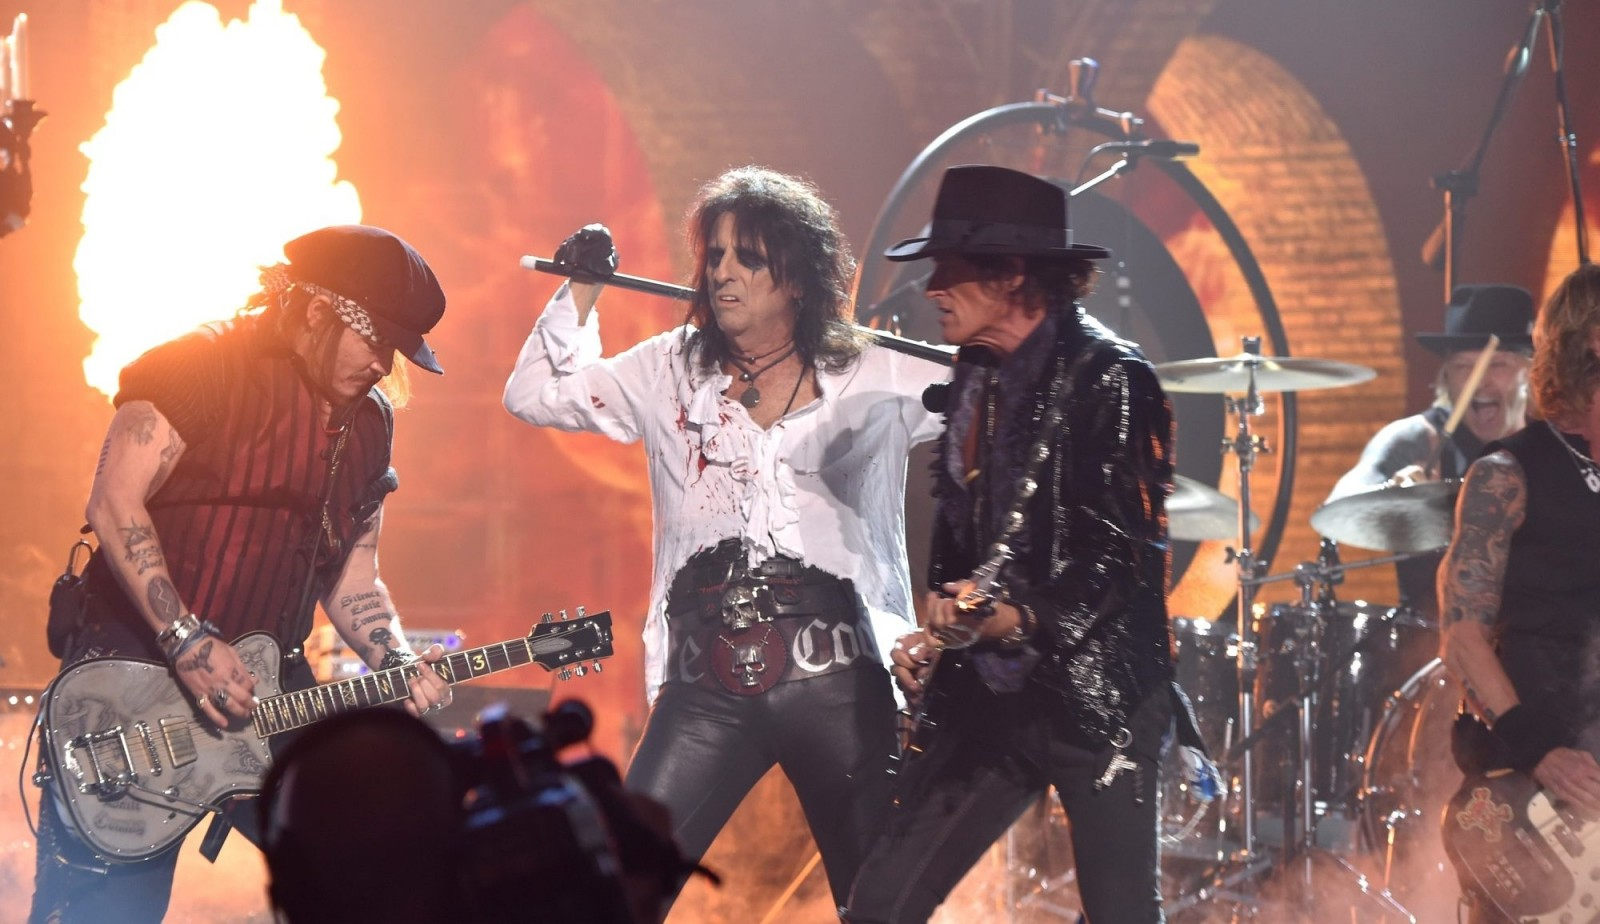 Johnny Depp, left, Alice Cooper and Joe Perry of Hollywood Vampires will perform in a special outdoor concert at the Seneca Niagara Casino in Niagara Falls. (Getty Images)